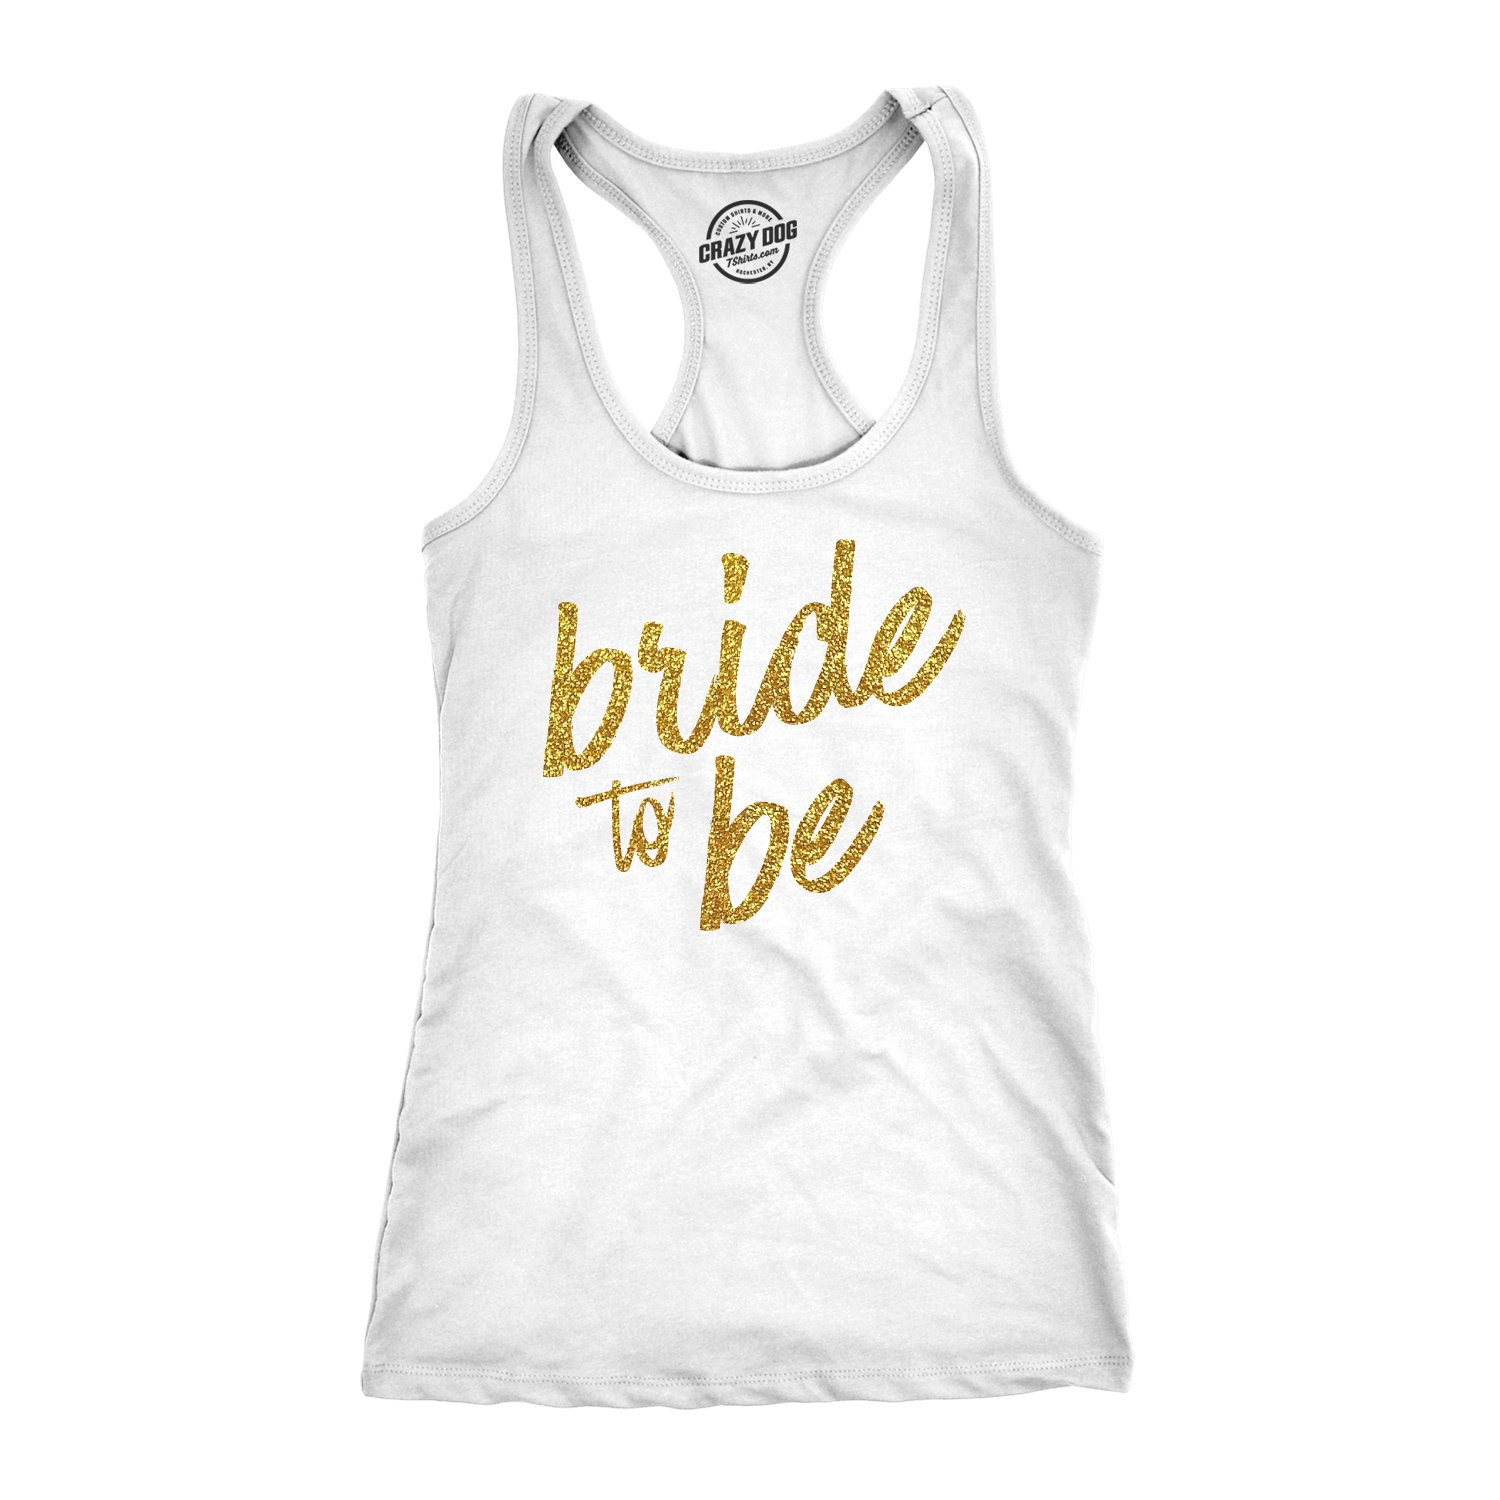 - Femme Womens Tank Bride to Be Tanktop Cute Wedding Day Bachelorette Party Tee Gold Glitter Crazy Dog Tshirts